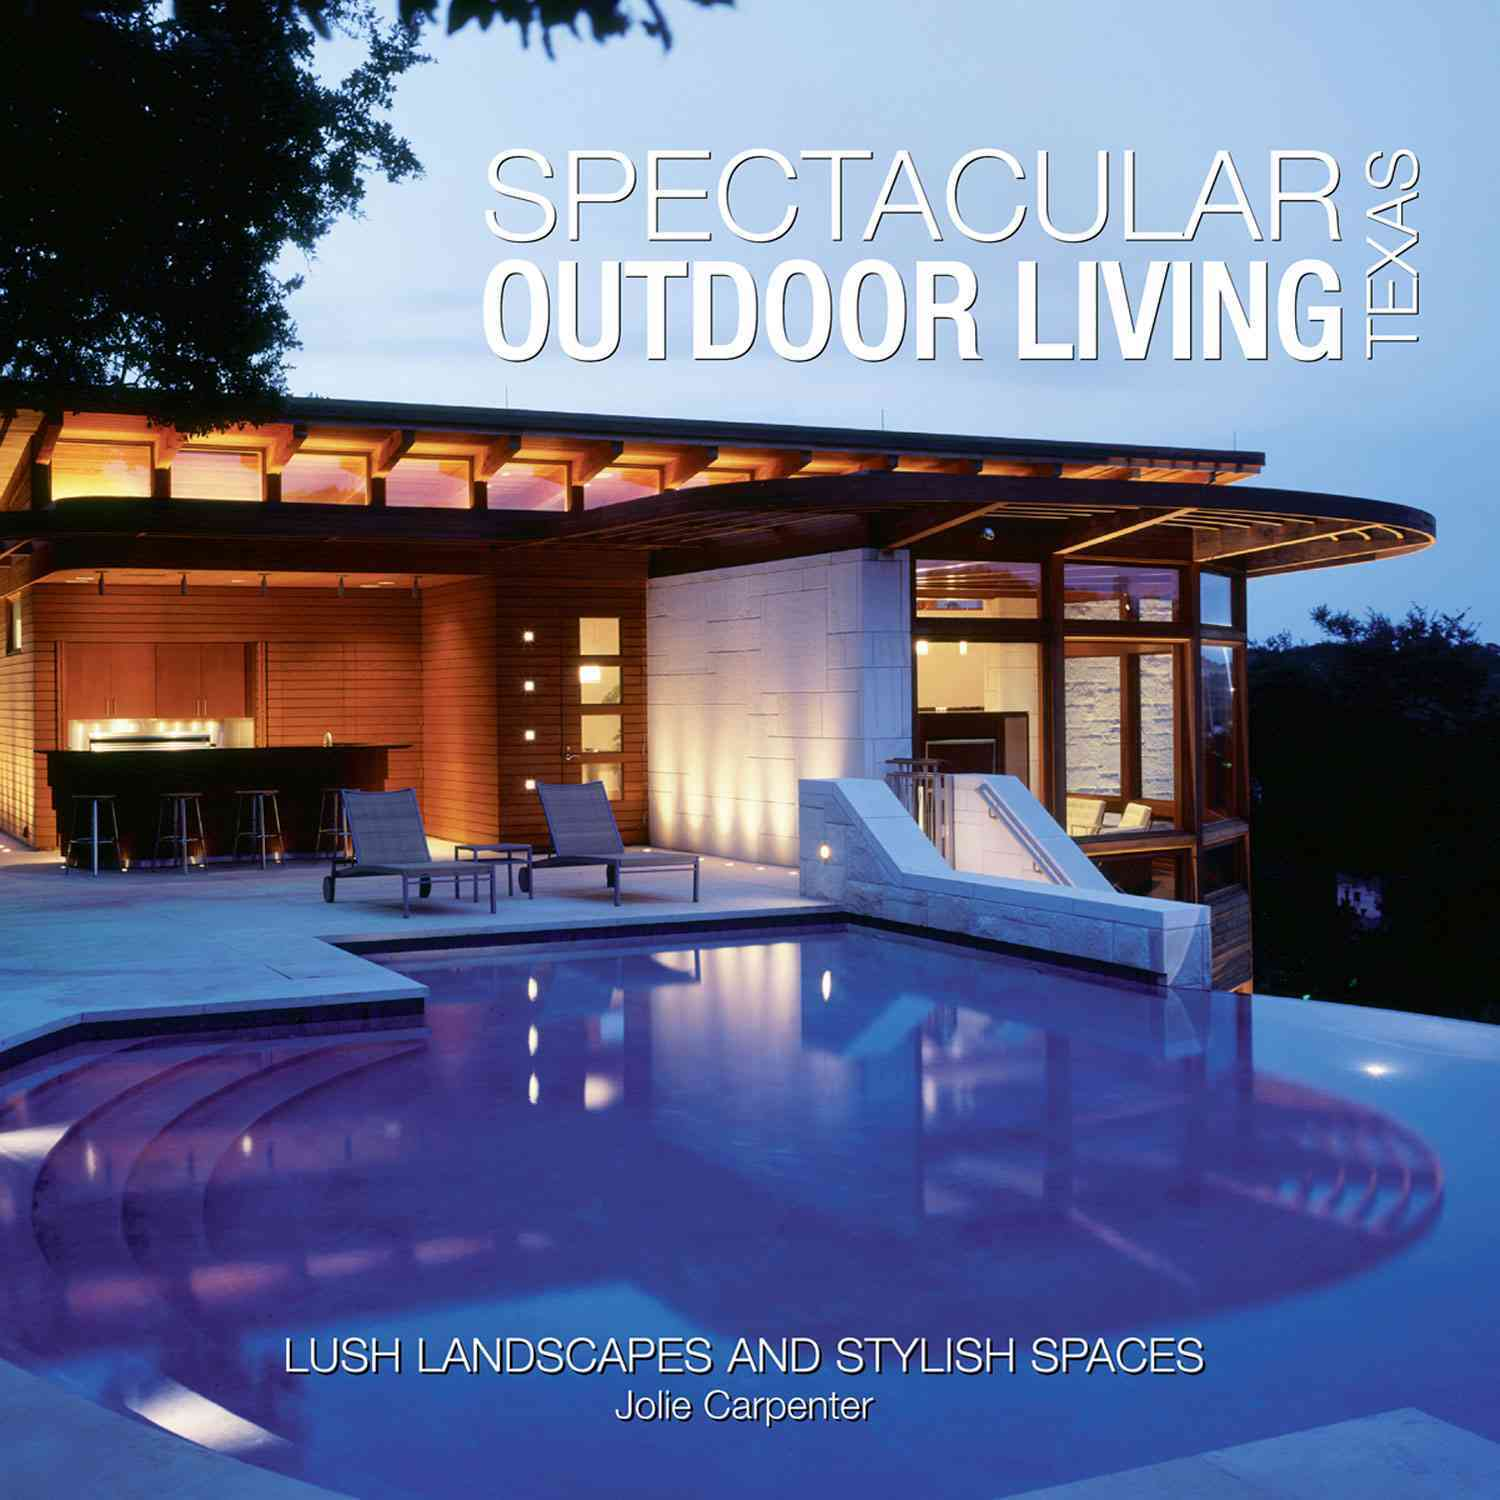 Spectacular Outdoor Living of Texas: Lush Landscapes and Stylish Spaces (Hardcover)